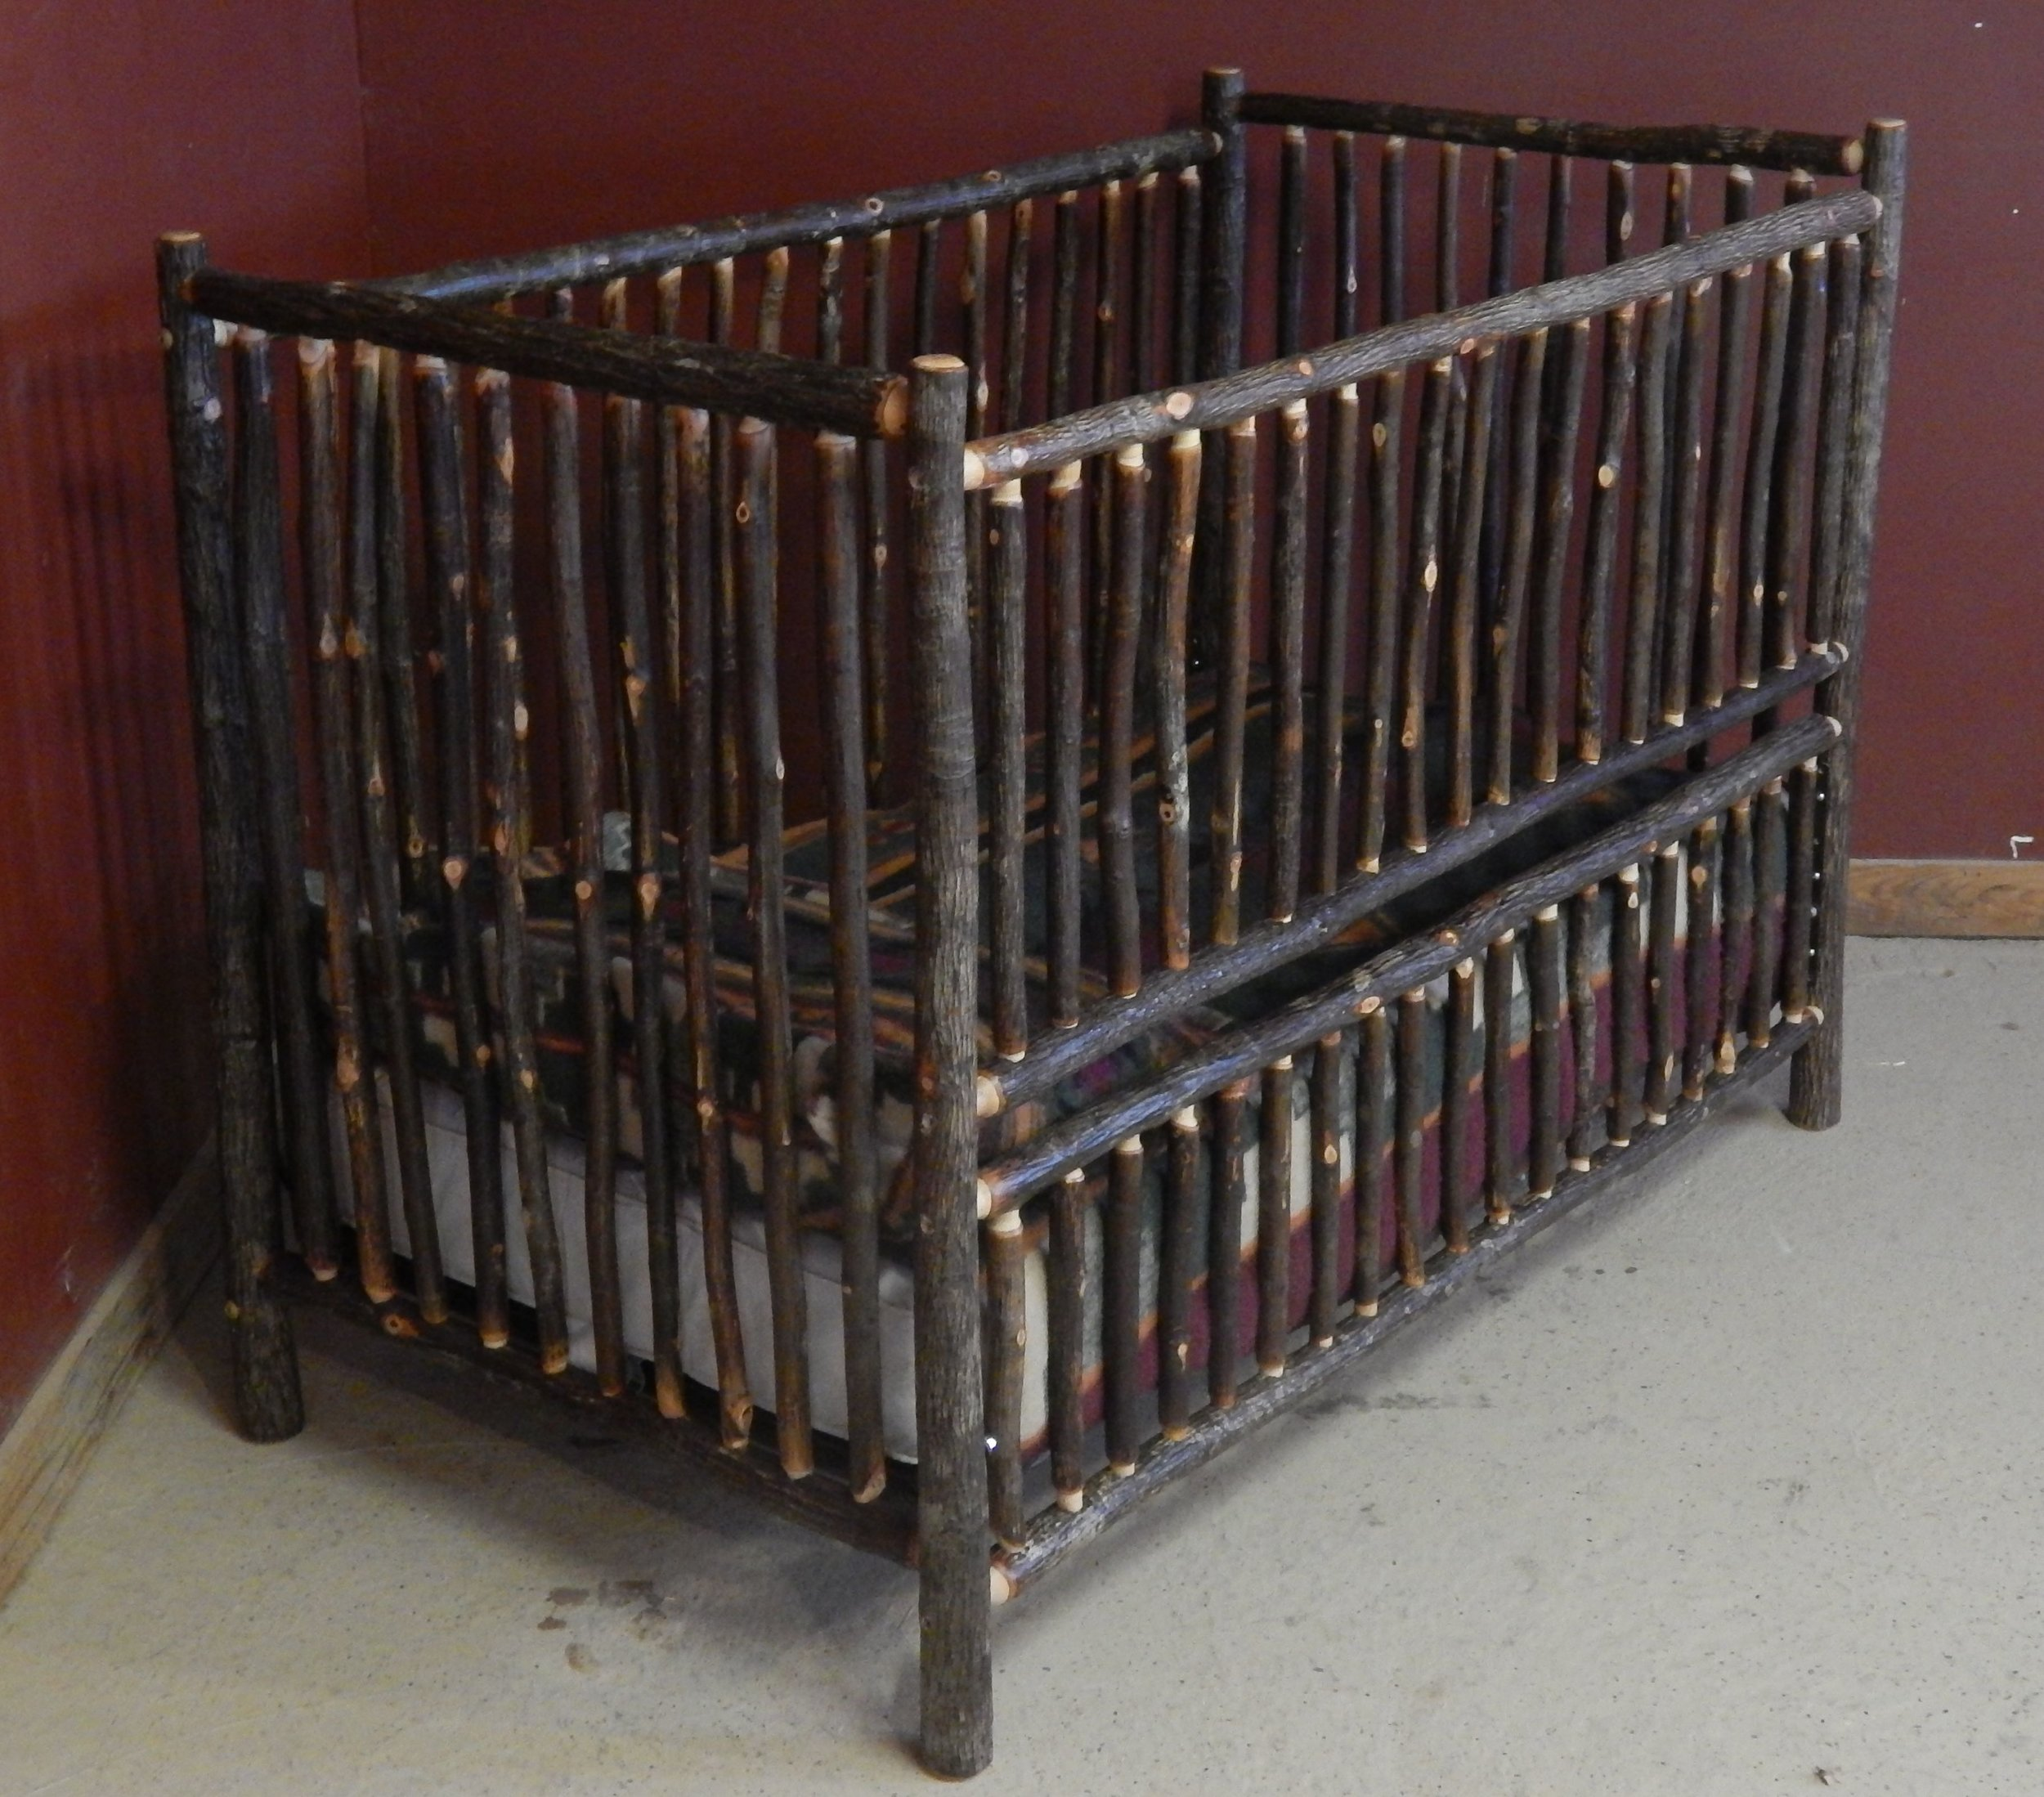 Hickory Log Convertible Crib converts to toddler bed/full bed